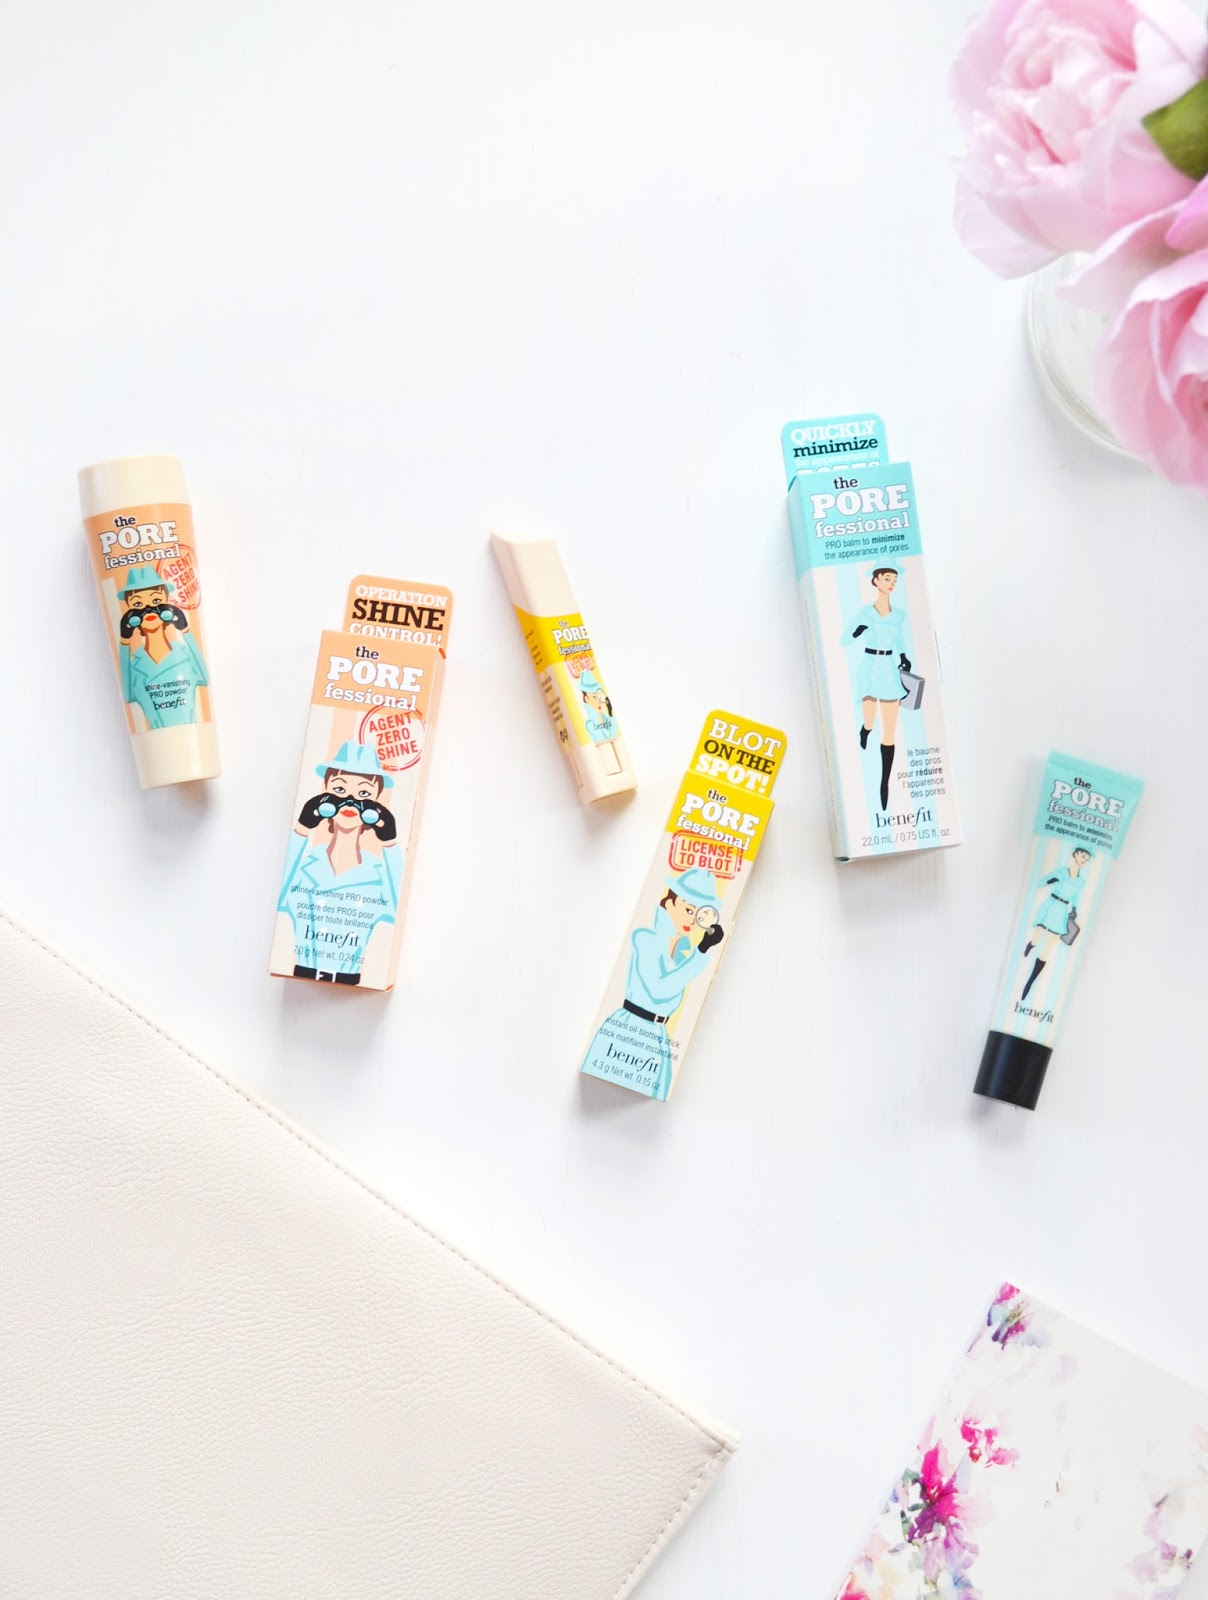 porefessional from benefit cosmetics